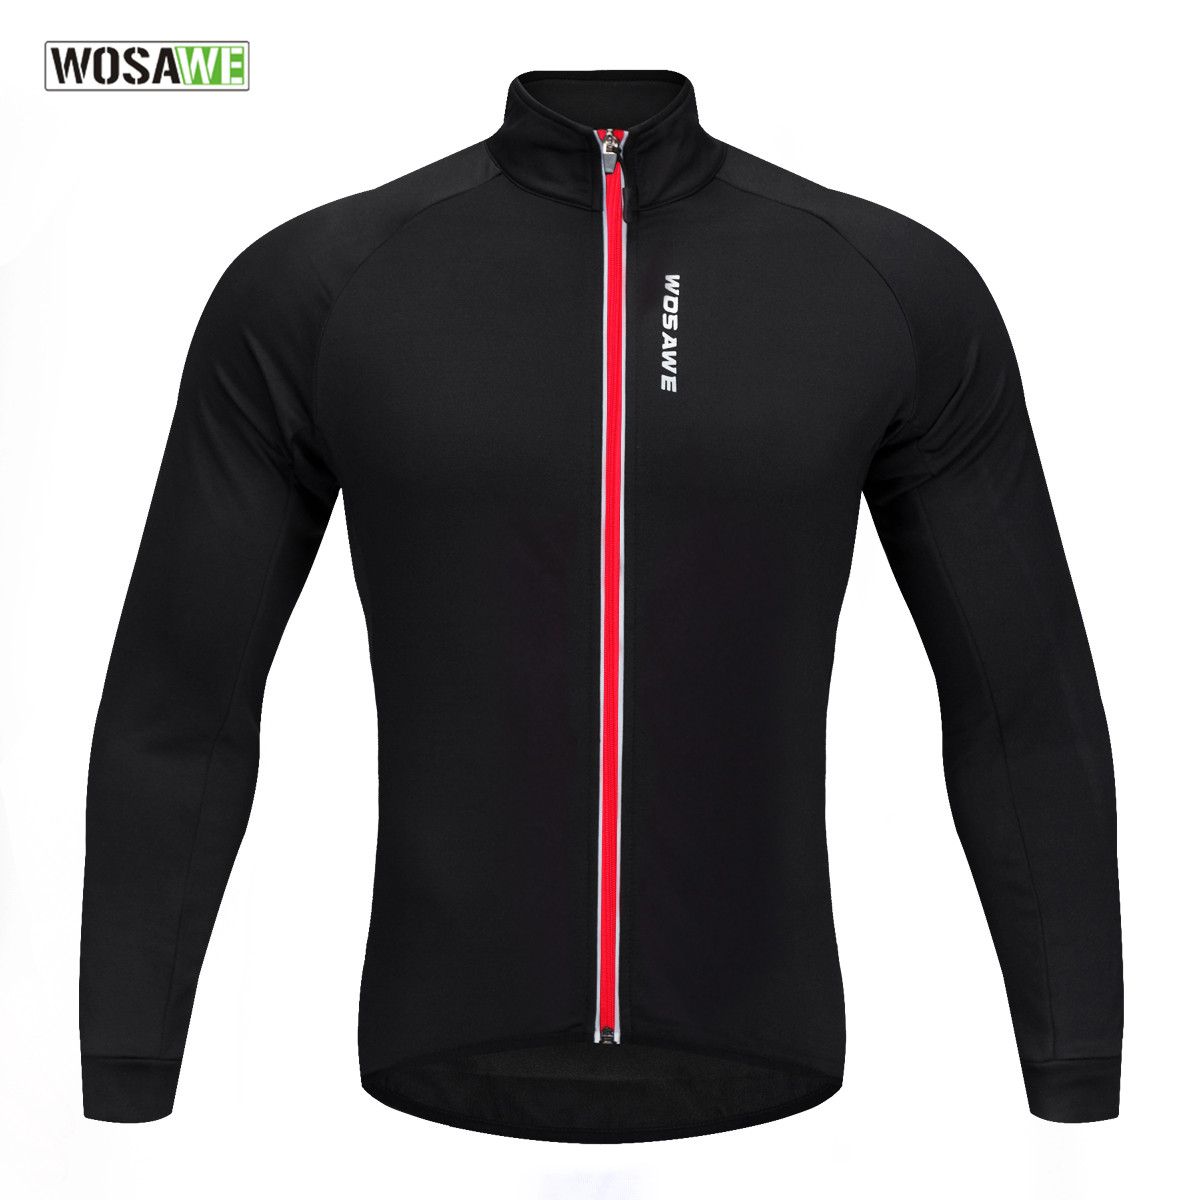 WOSAWE Soft Thermal Fleece Cycling Jersey Long Sleeve MTB Bike Bicycle Shirt Road Cycling Autumn Winter Sports Wear